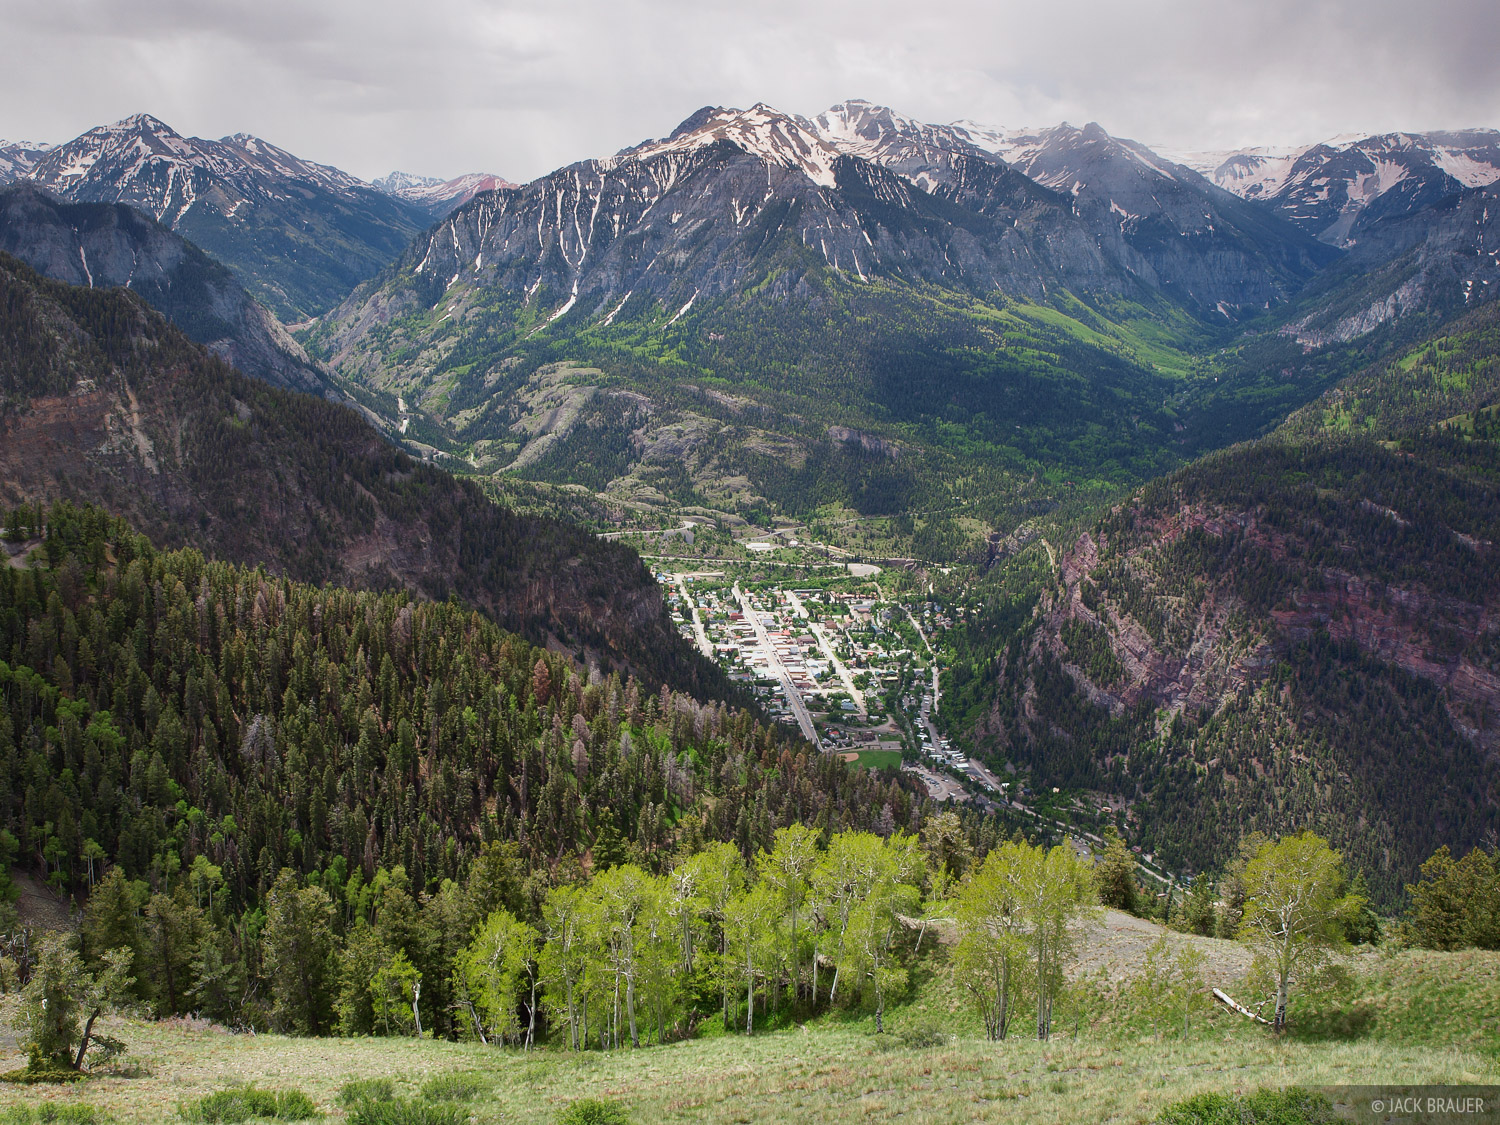 San Juan Mountains, Ouray, Colorado, photo